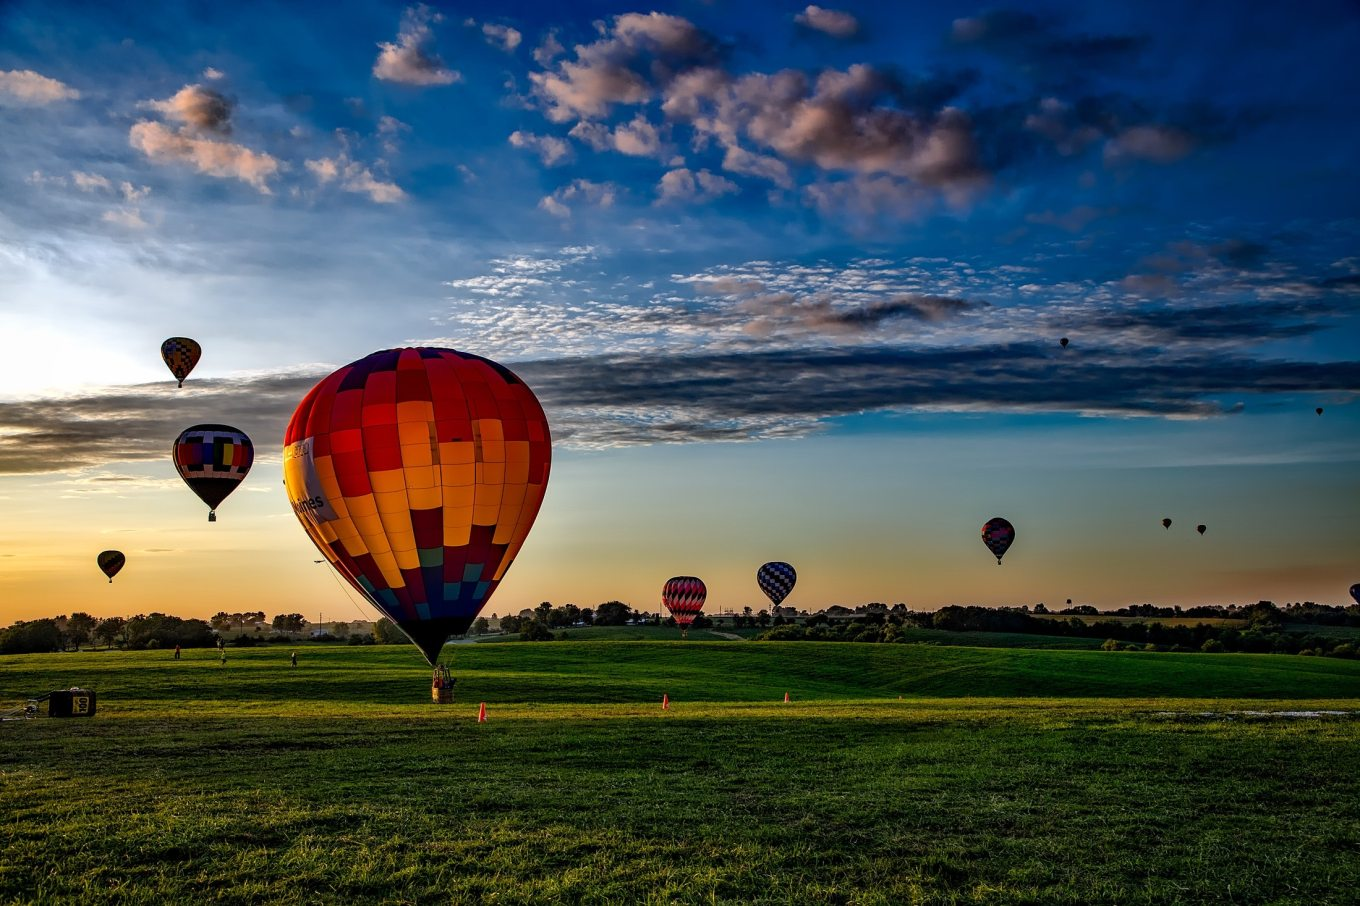 adventure-aircraft-balloon-210012